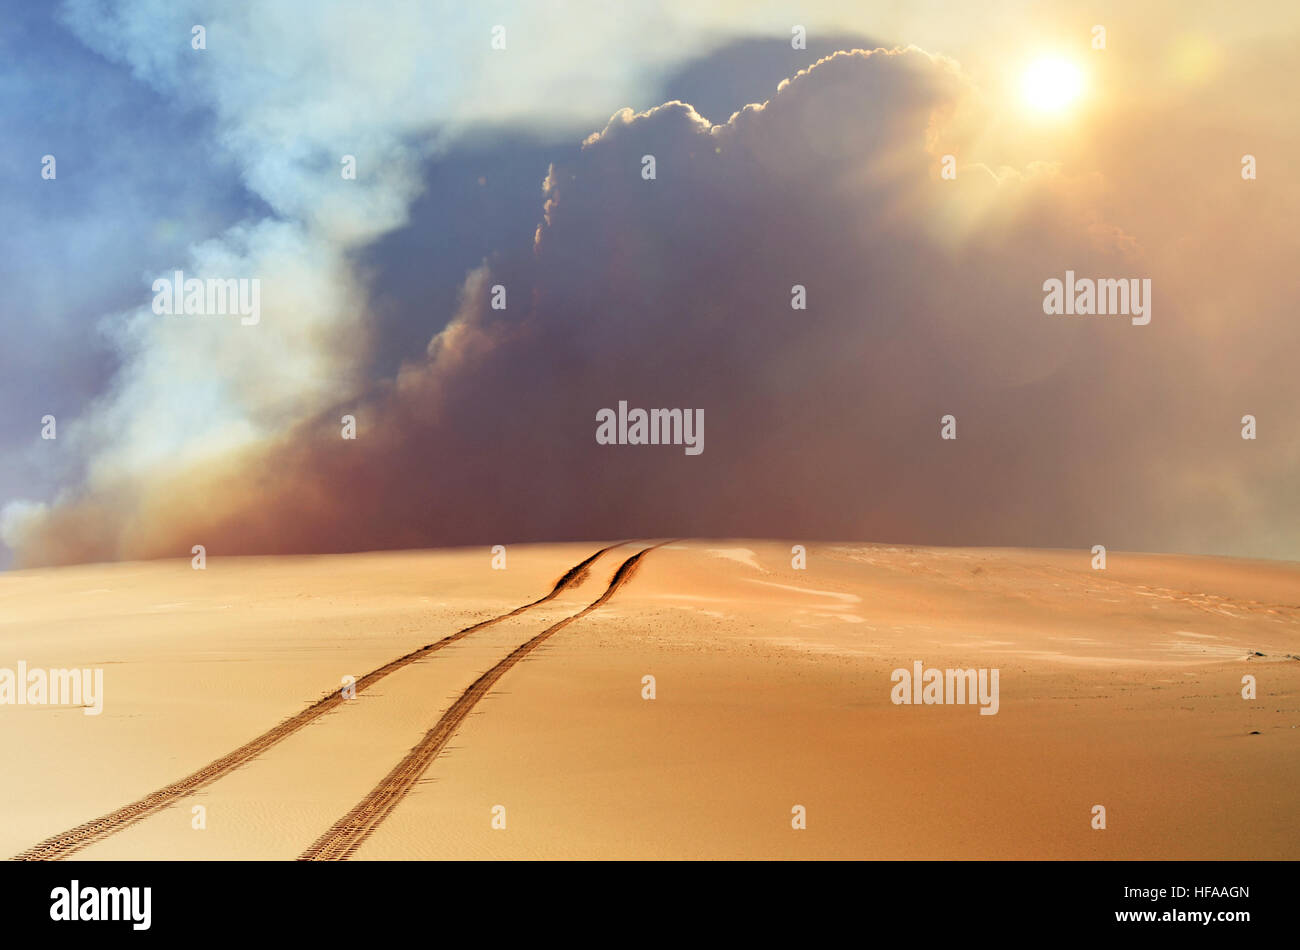 Vehicle tracks through desert and dunes leading into a sand, smoke and cloud filled sky - Stock Image